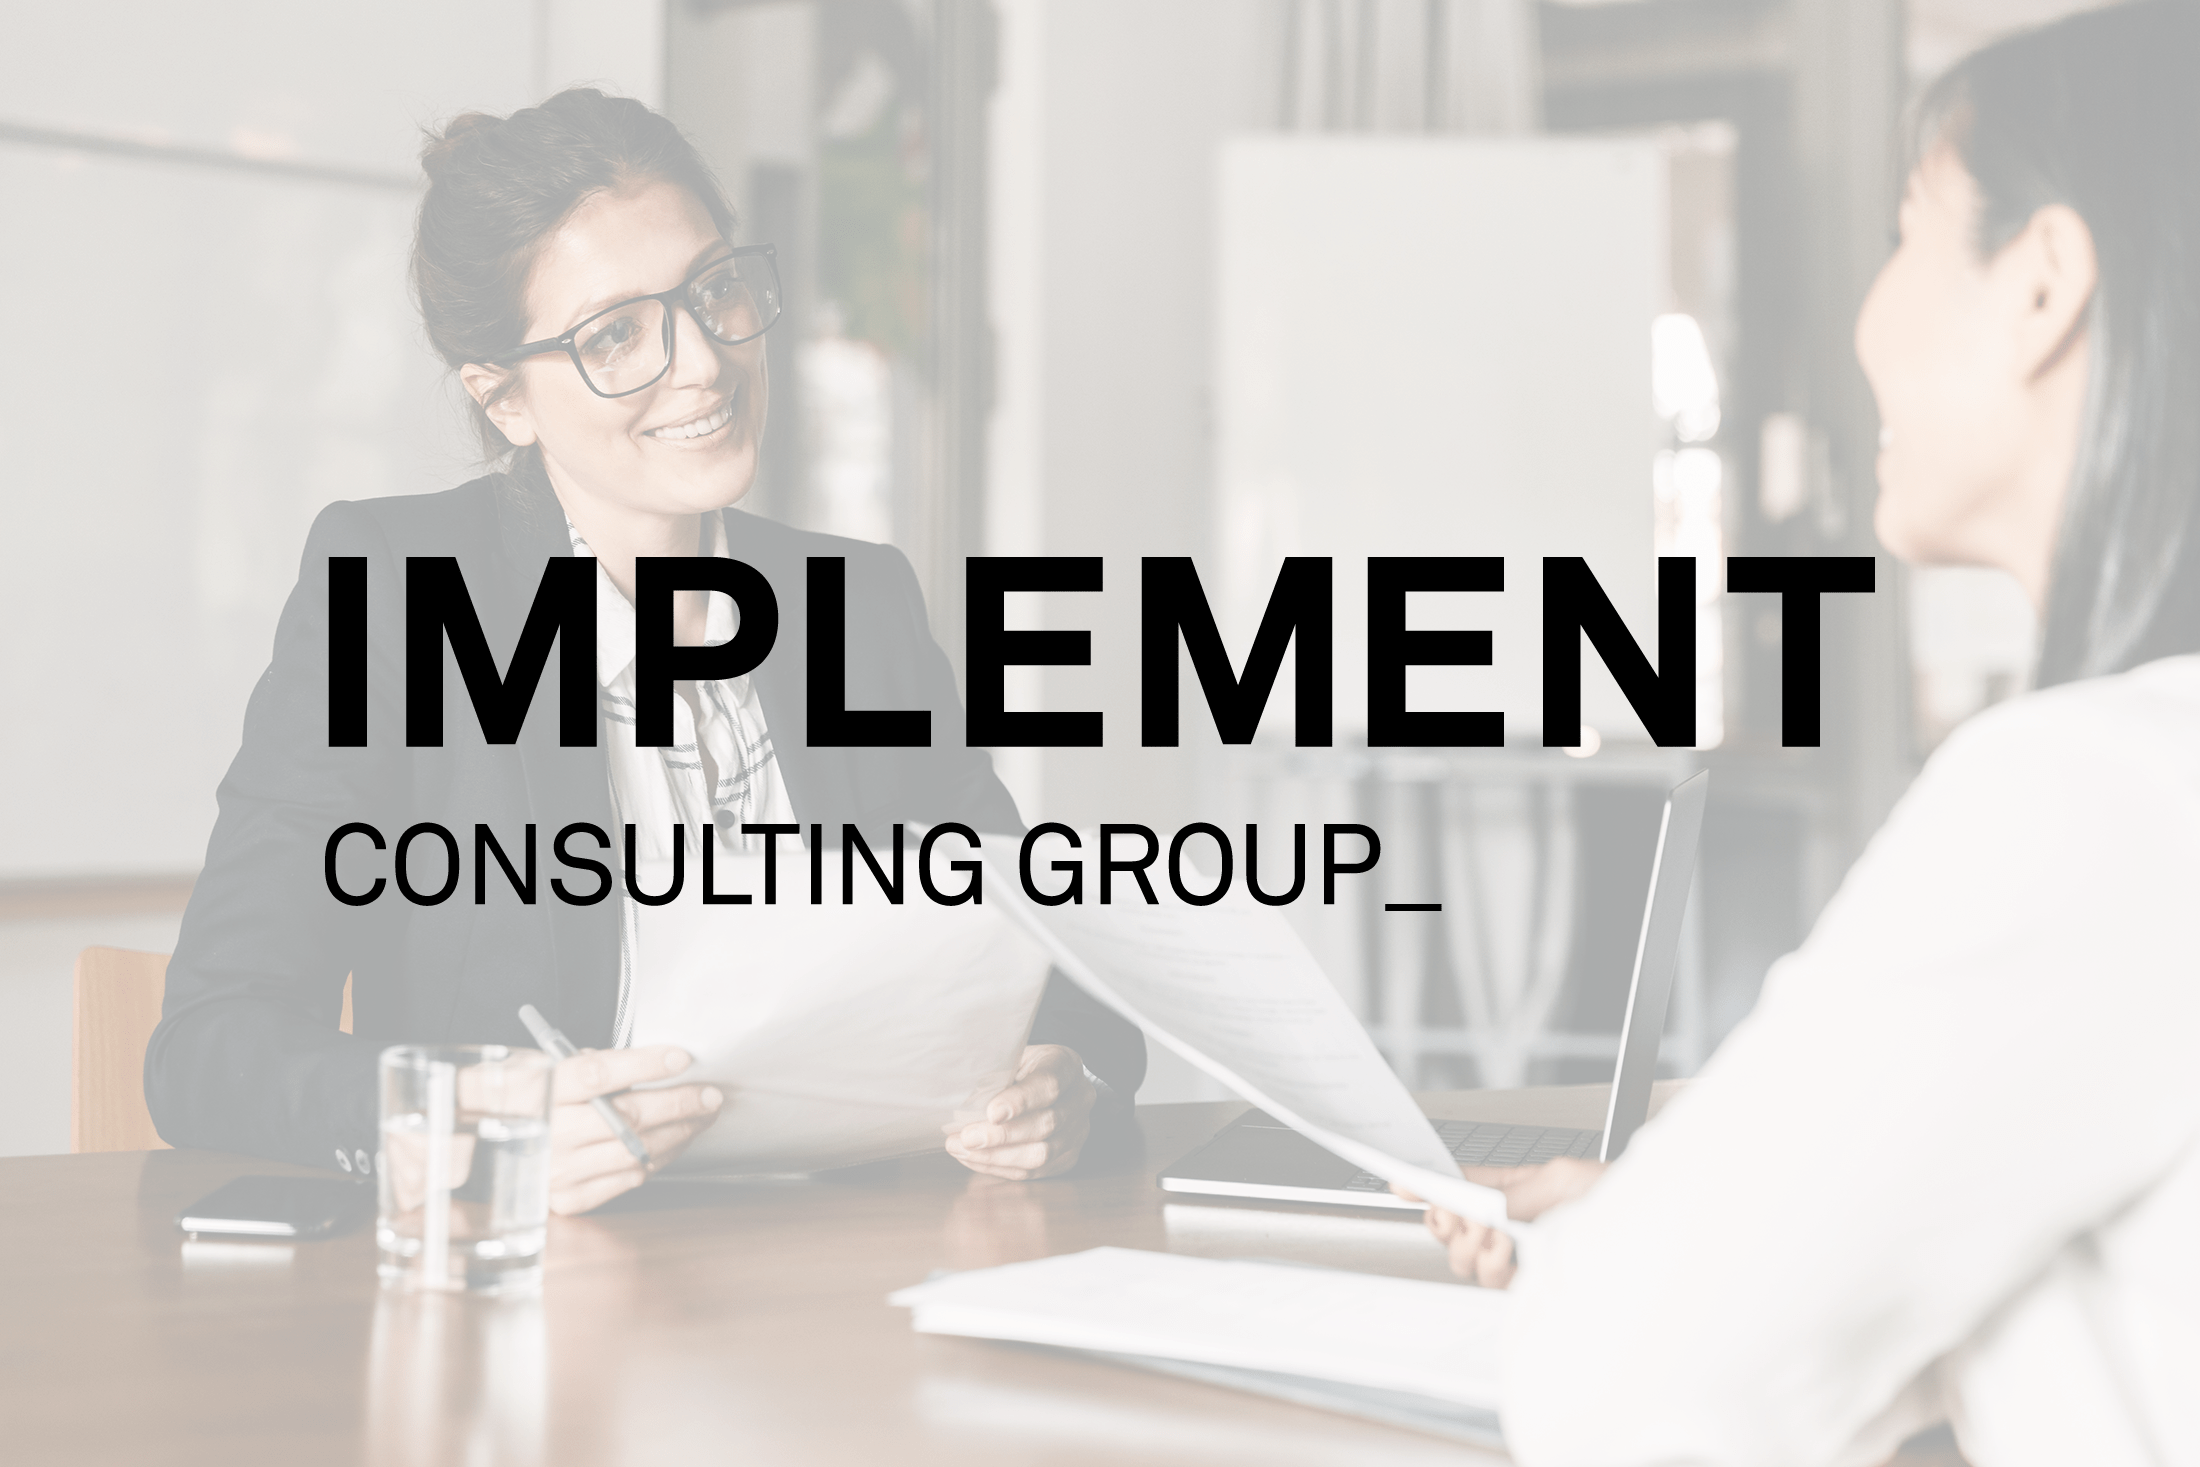 Implement Consulting Group - Digitalisering af CV'er